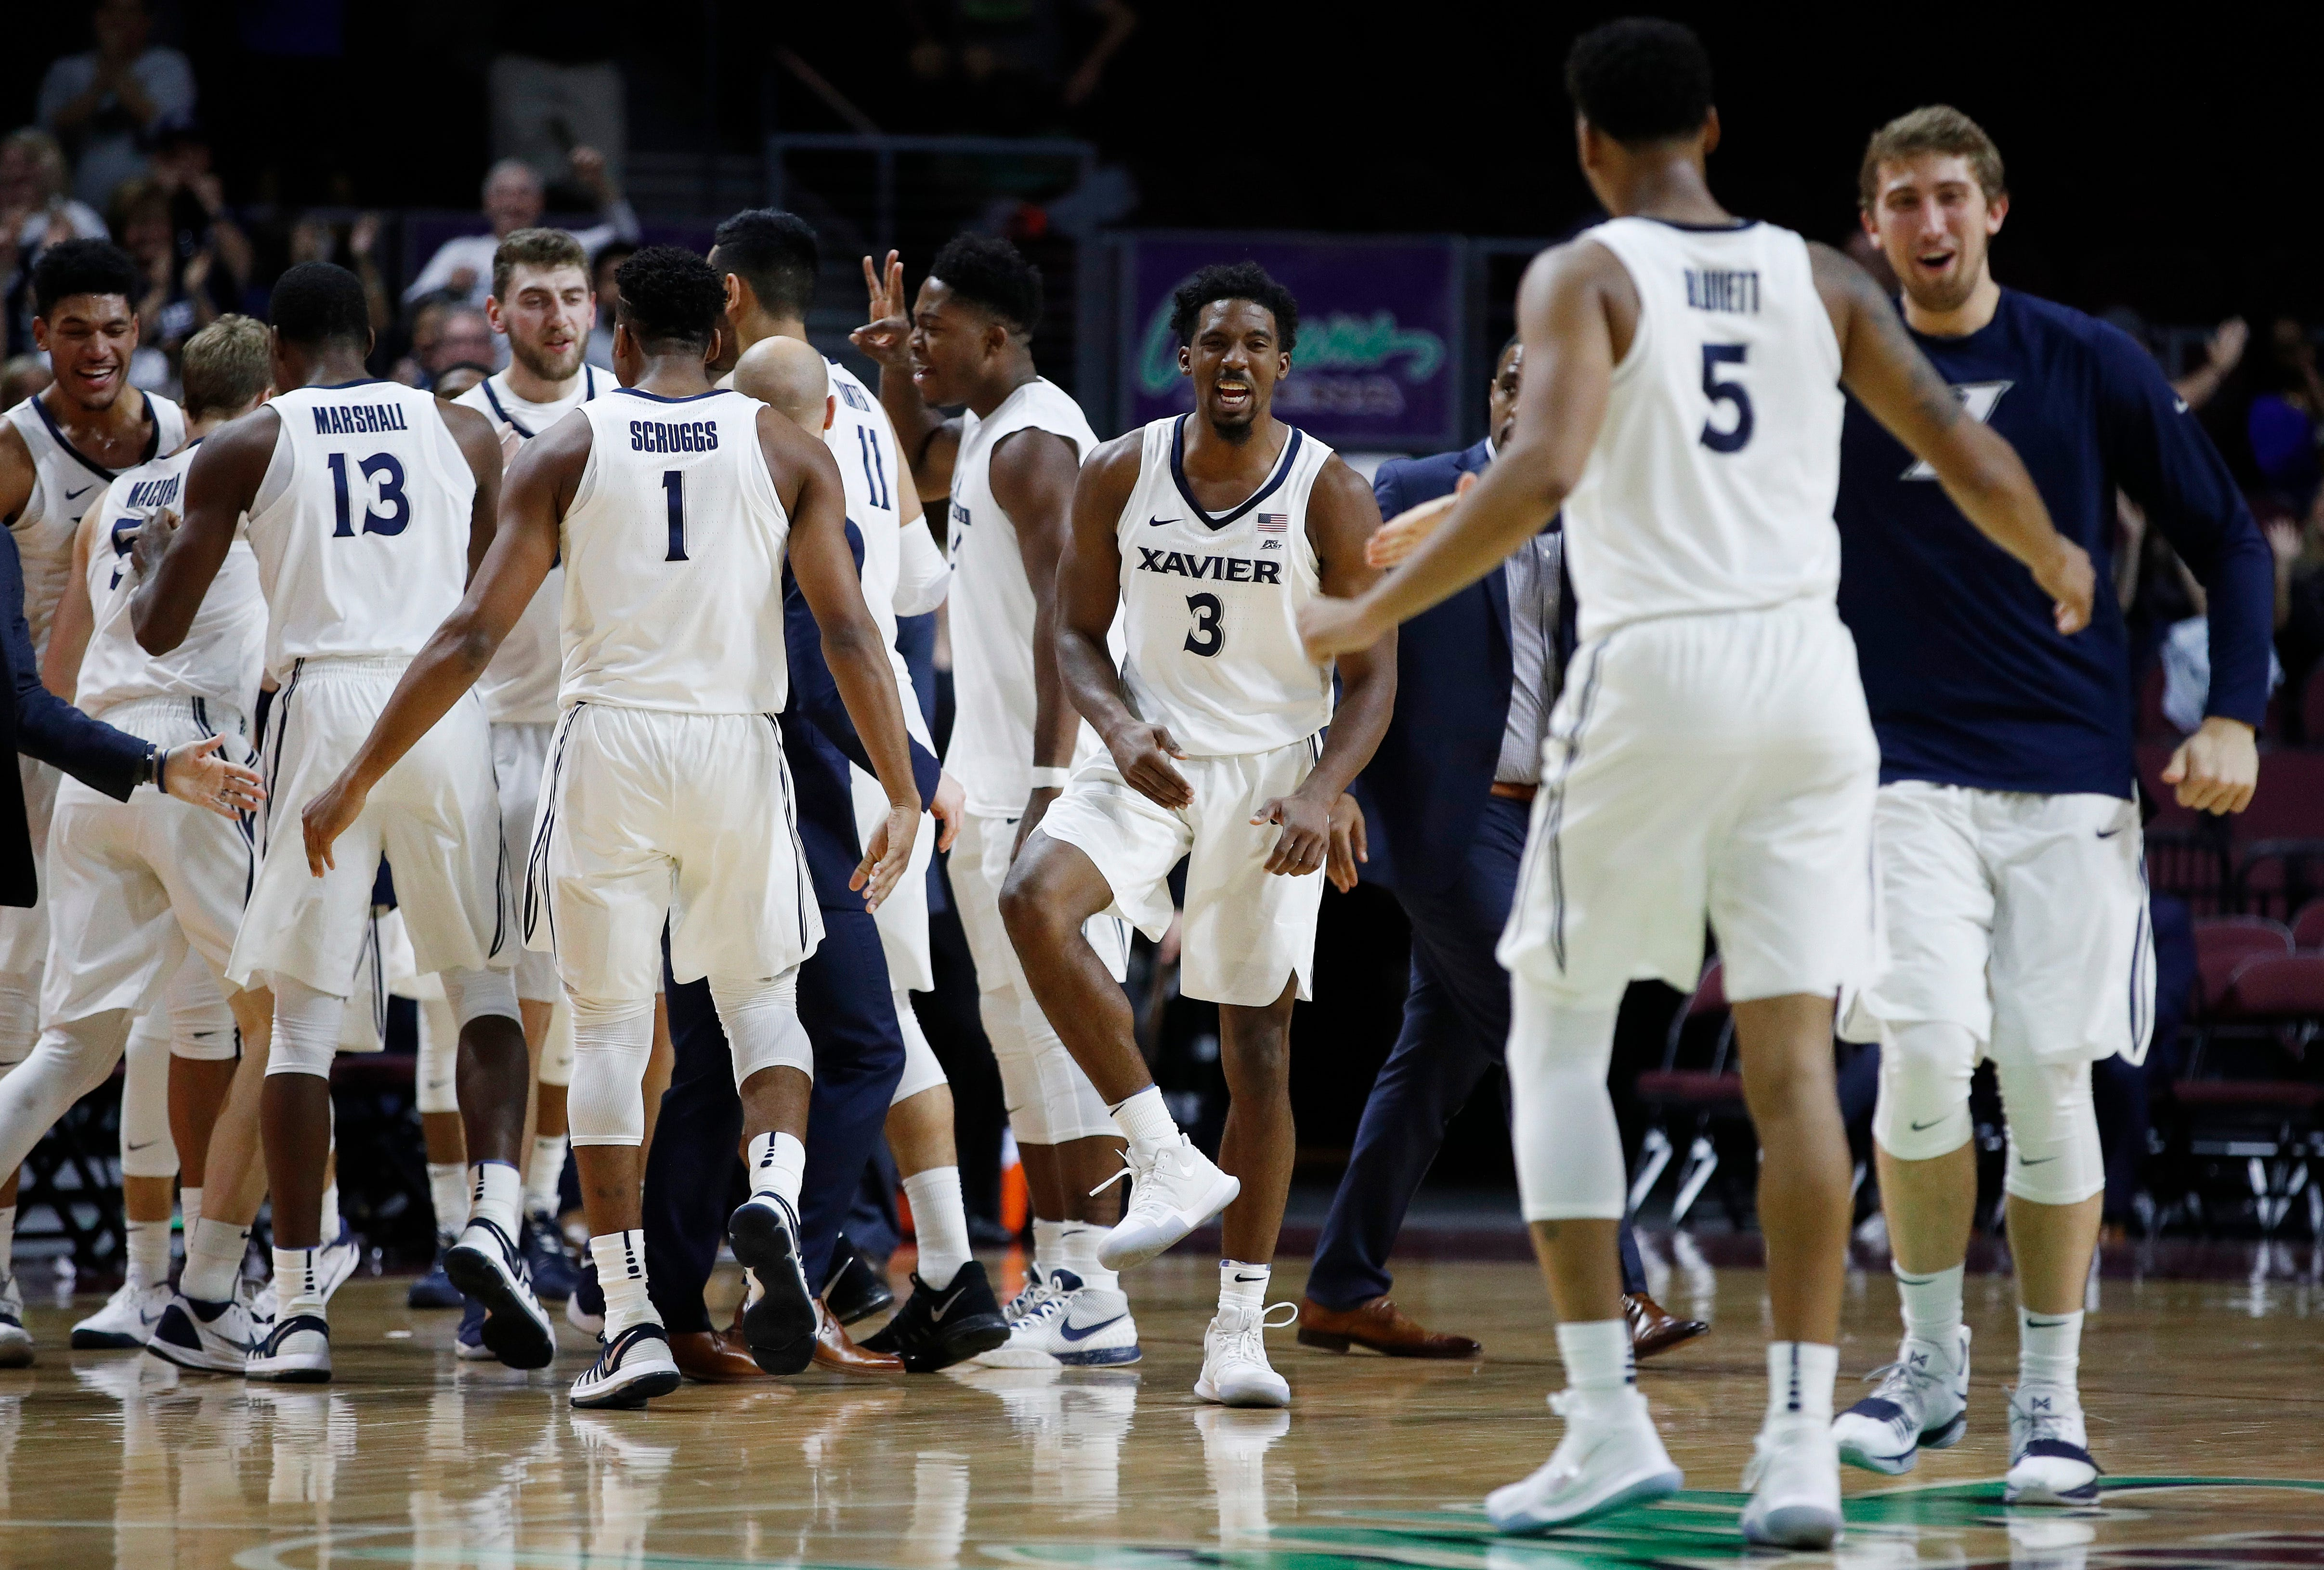 Xavier players celebrate after a play against Arizona